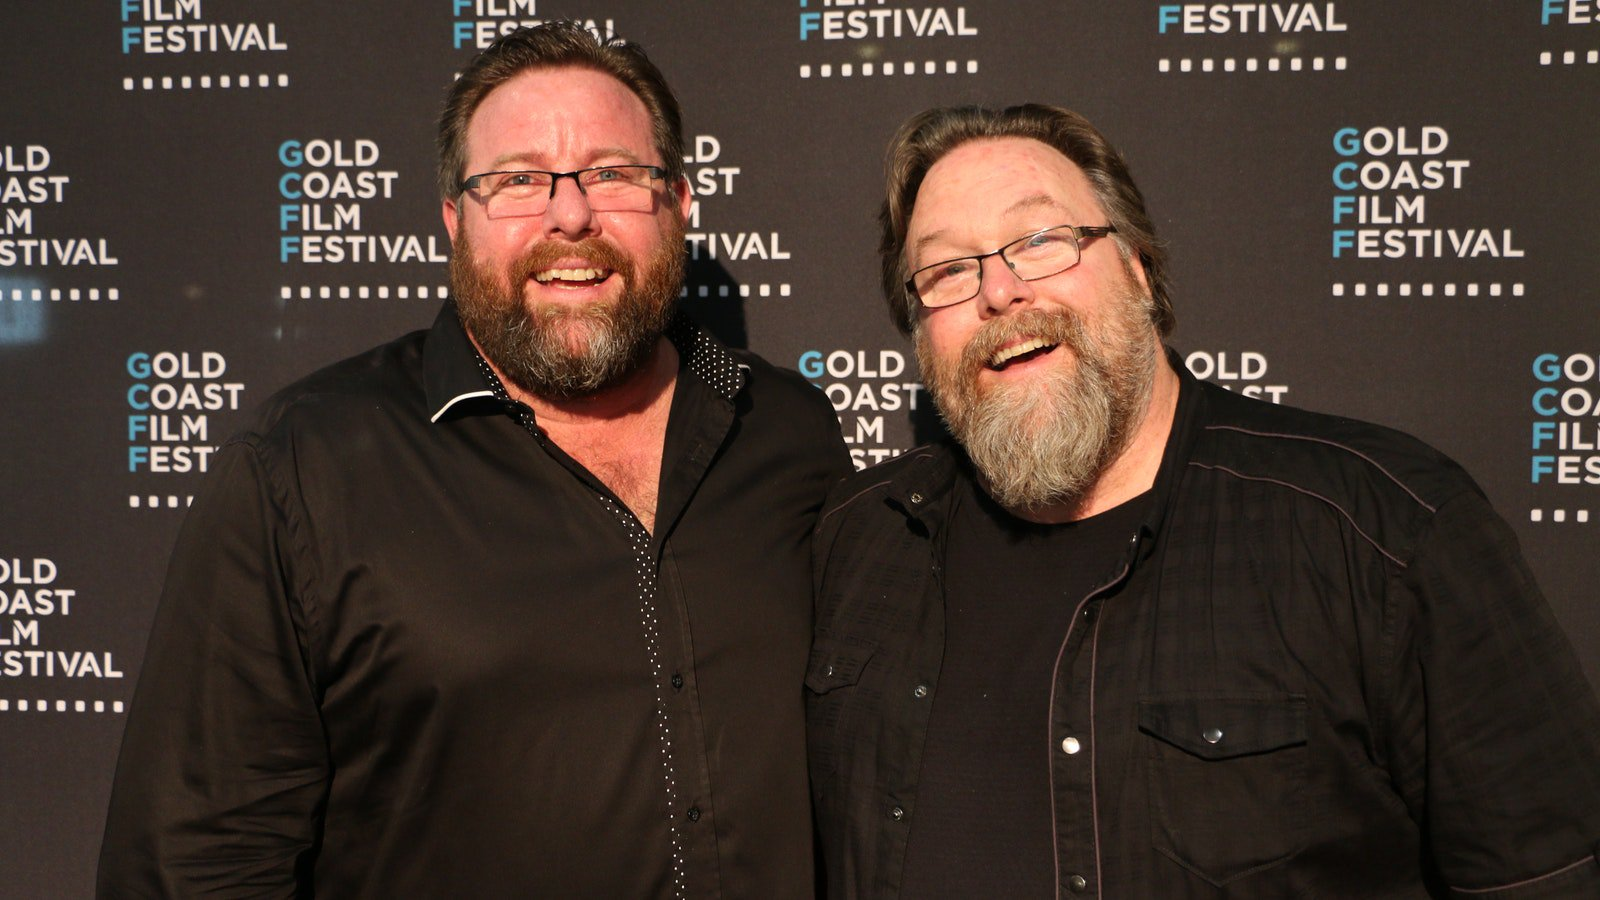 GCFF Closing Night - Brothers Nest premiere with Shane & Clayton Jacobson